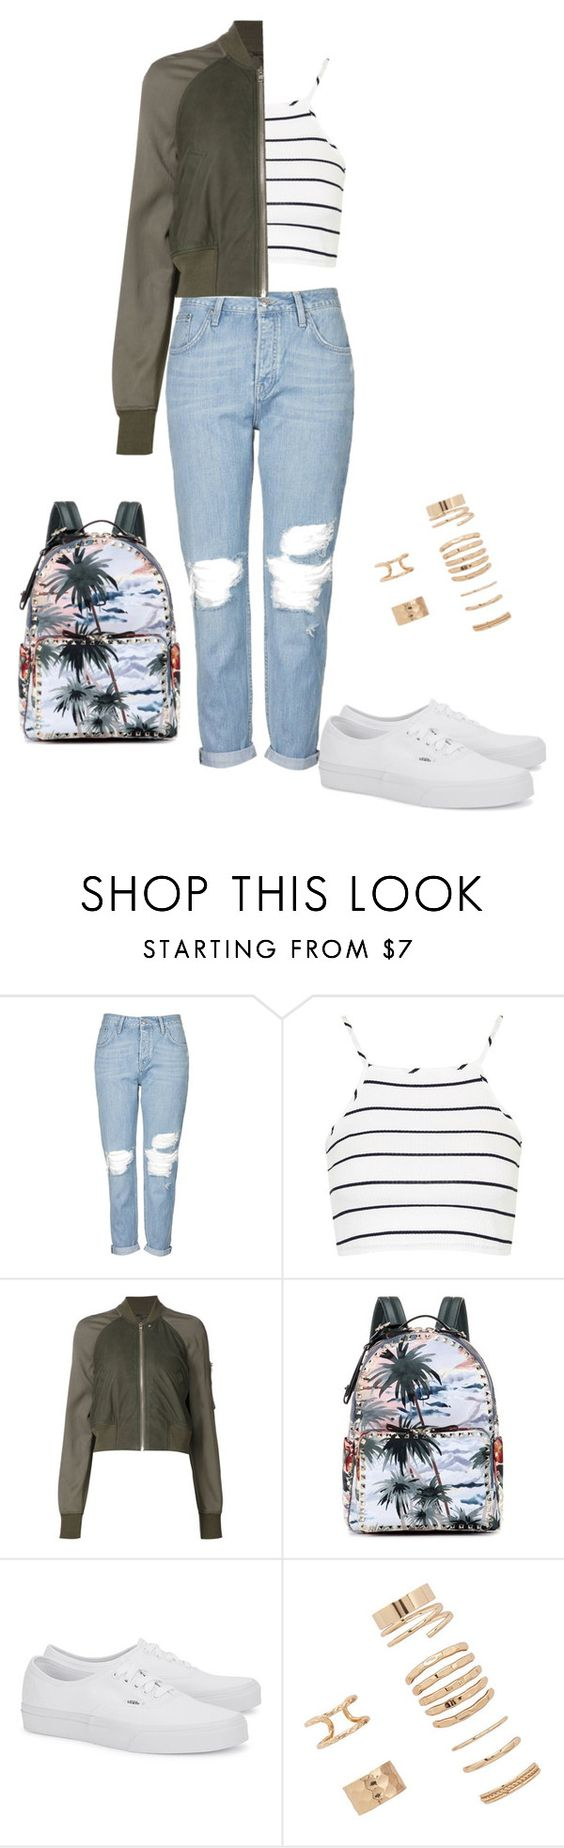 """""""Untitled #937"""" by molk7 ❤ liked on Polyvore featuring Topshop, Rick Owens, Valentino, Vans and Forever 21"""